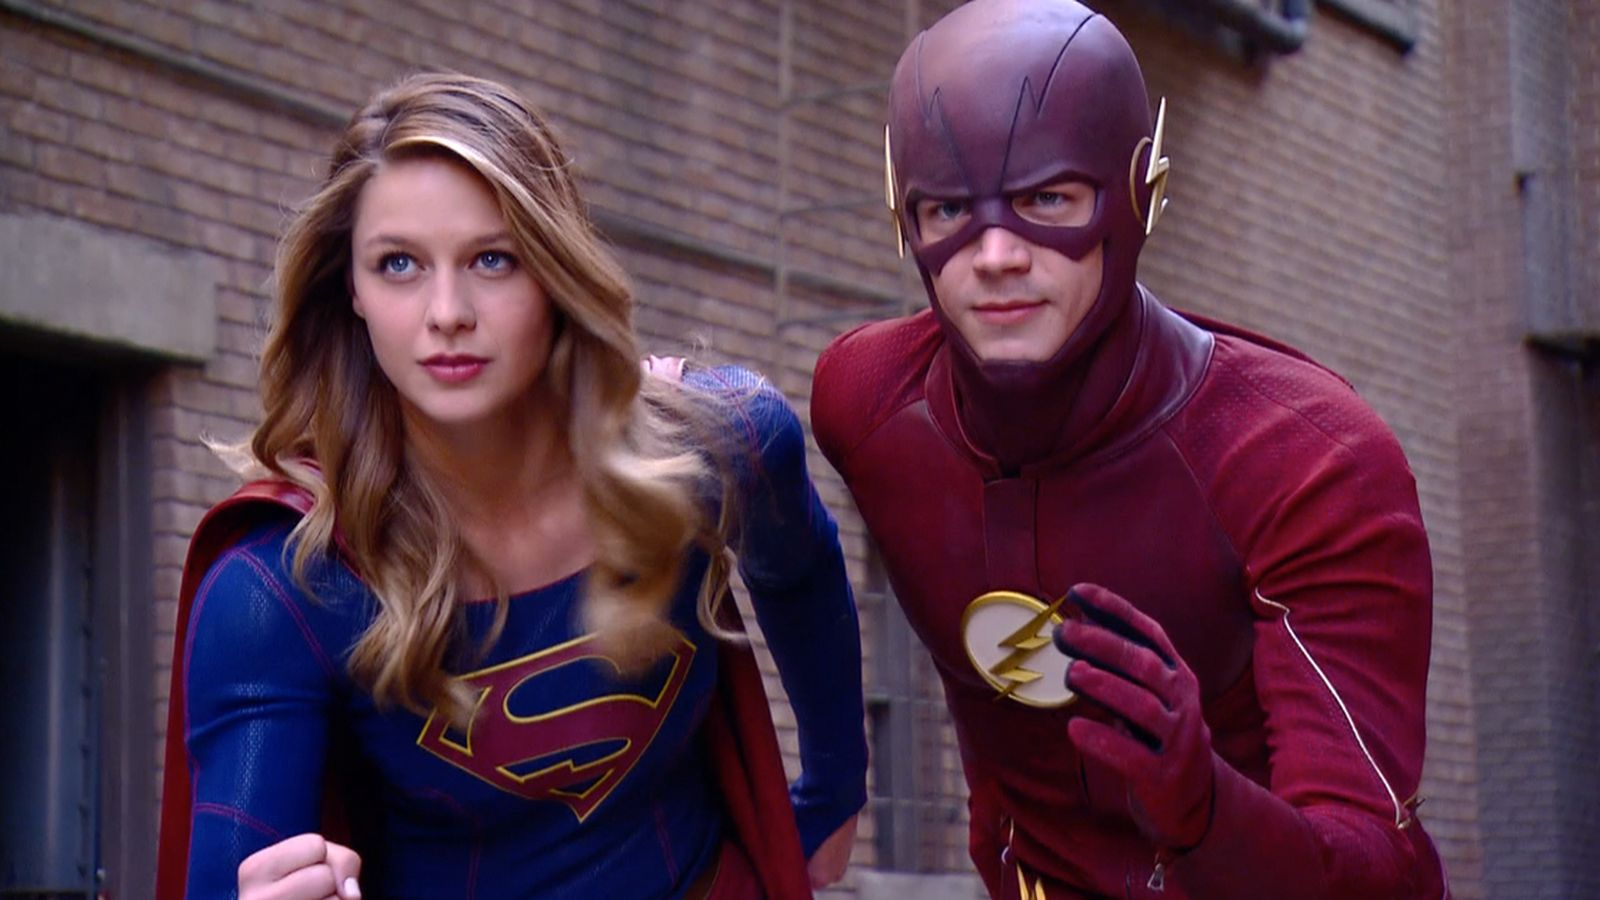 supergirl-vs-the-flash-tv